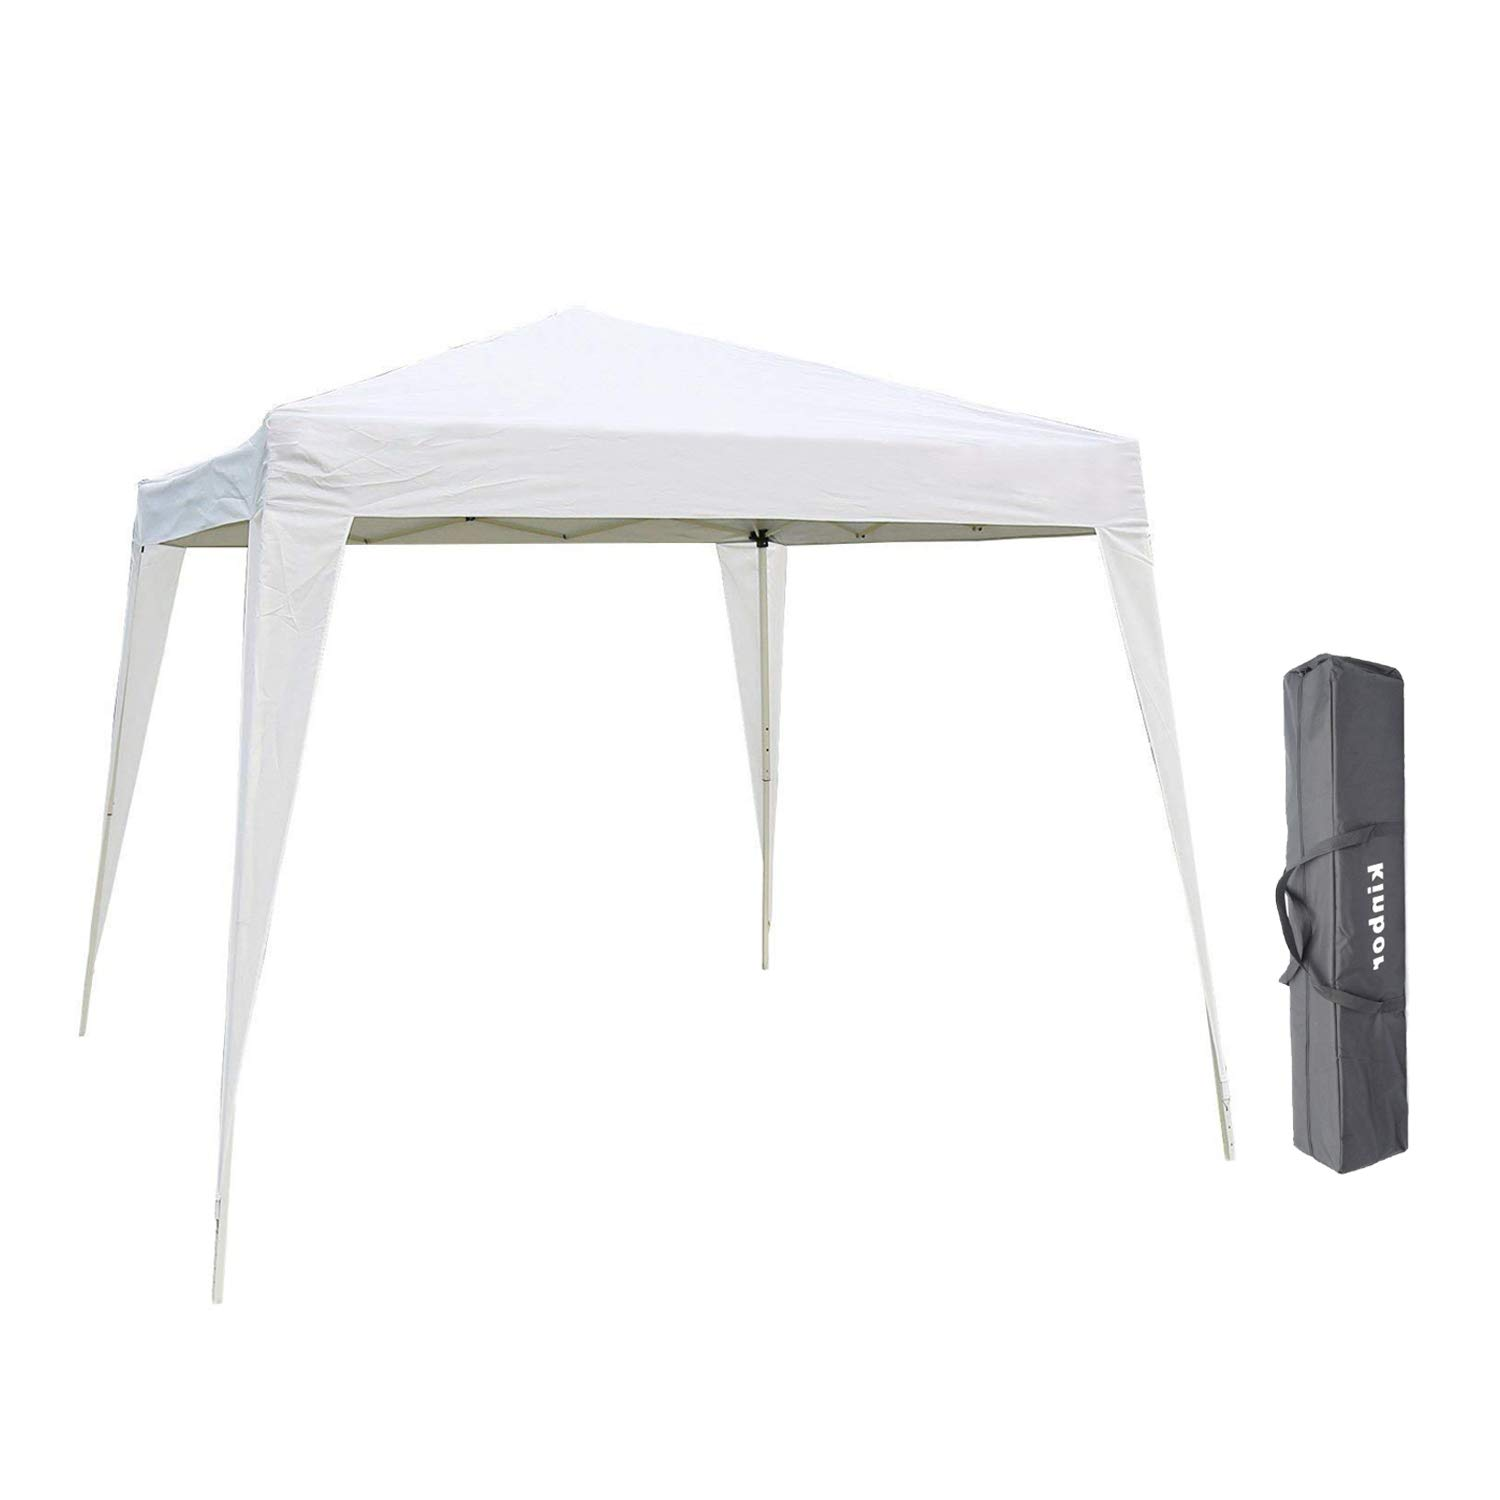 Kinbor Patio Canopy Tent, Pop Up Shelter, Portable Sports Cabana for Hiking, Camping, Fishing, Picnic, Family Outings